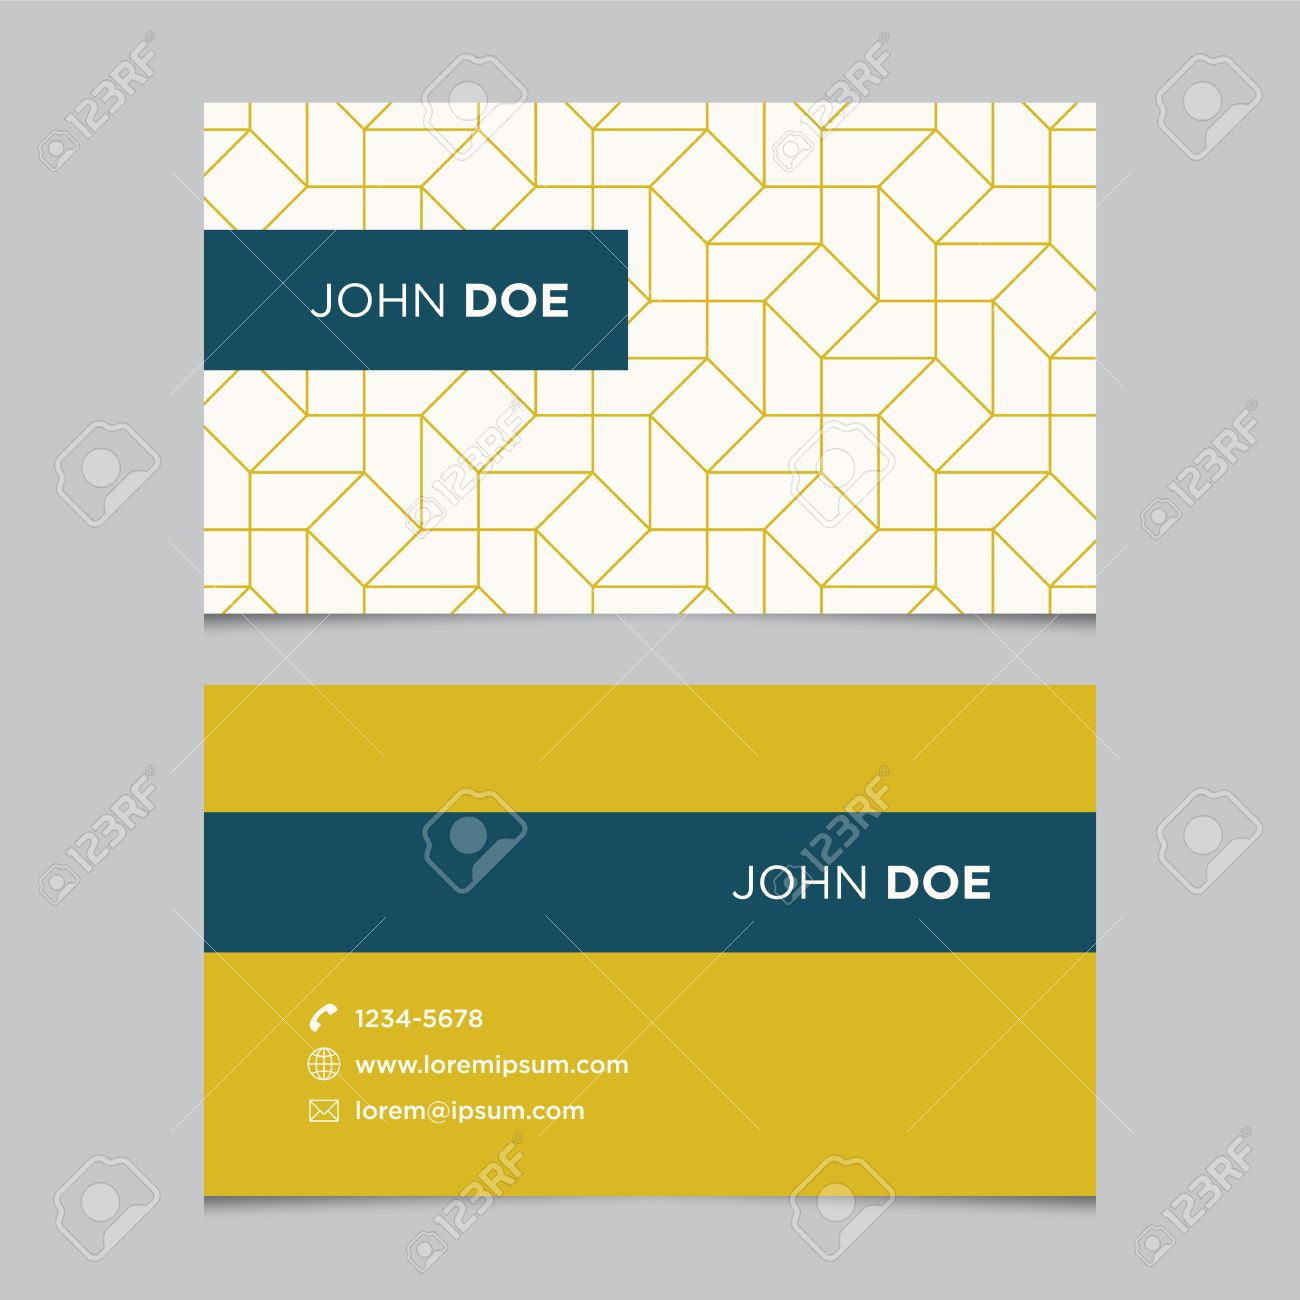 Business card template background pattern vector design editable business card template background pattern vector design editable stock vector 24506402 wajeb Gallery